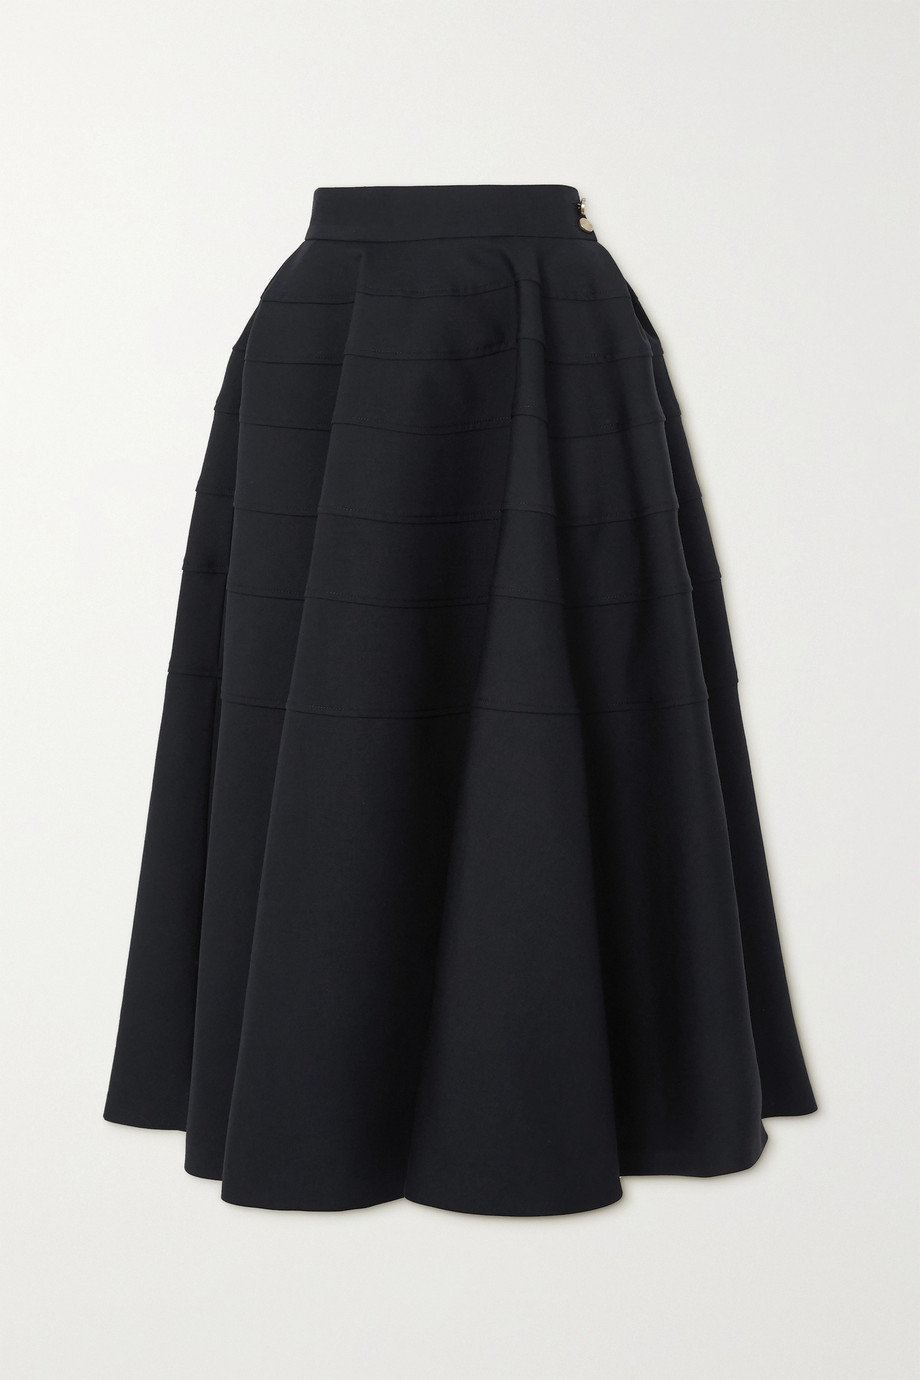 Loewe Pleated wool-twill midi skirt